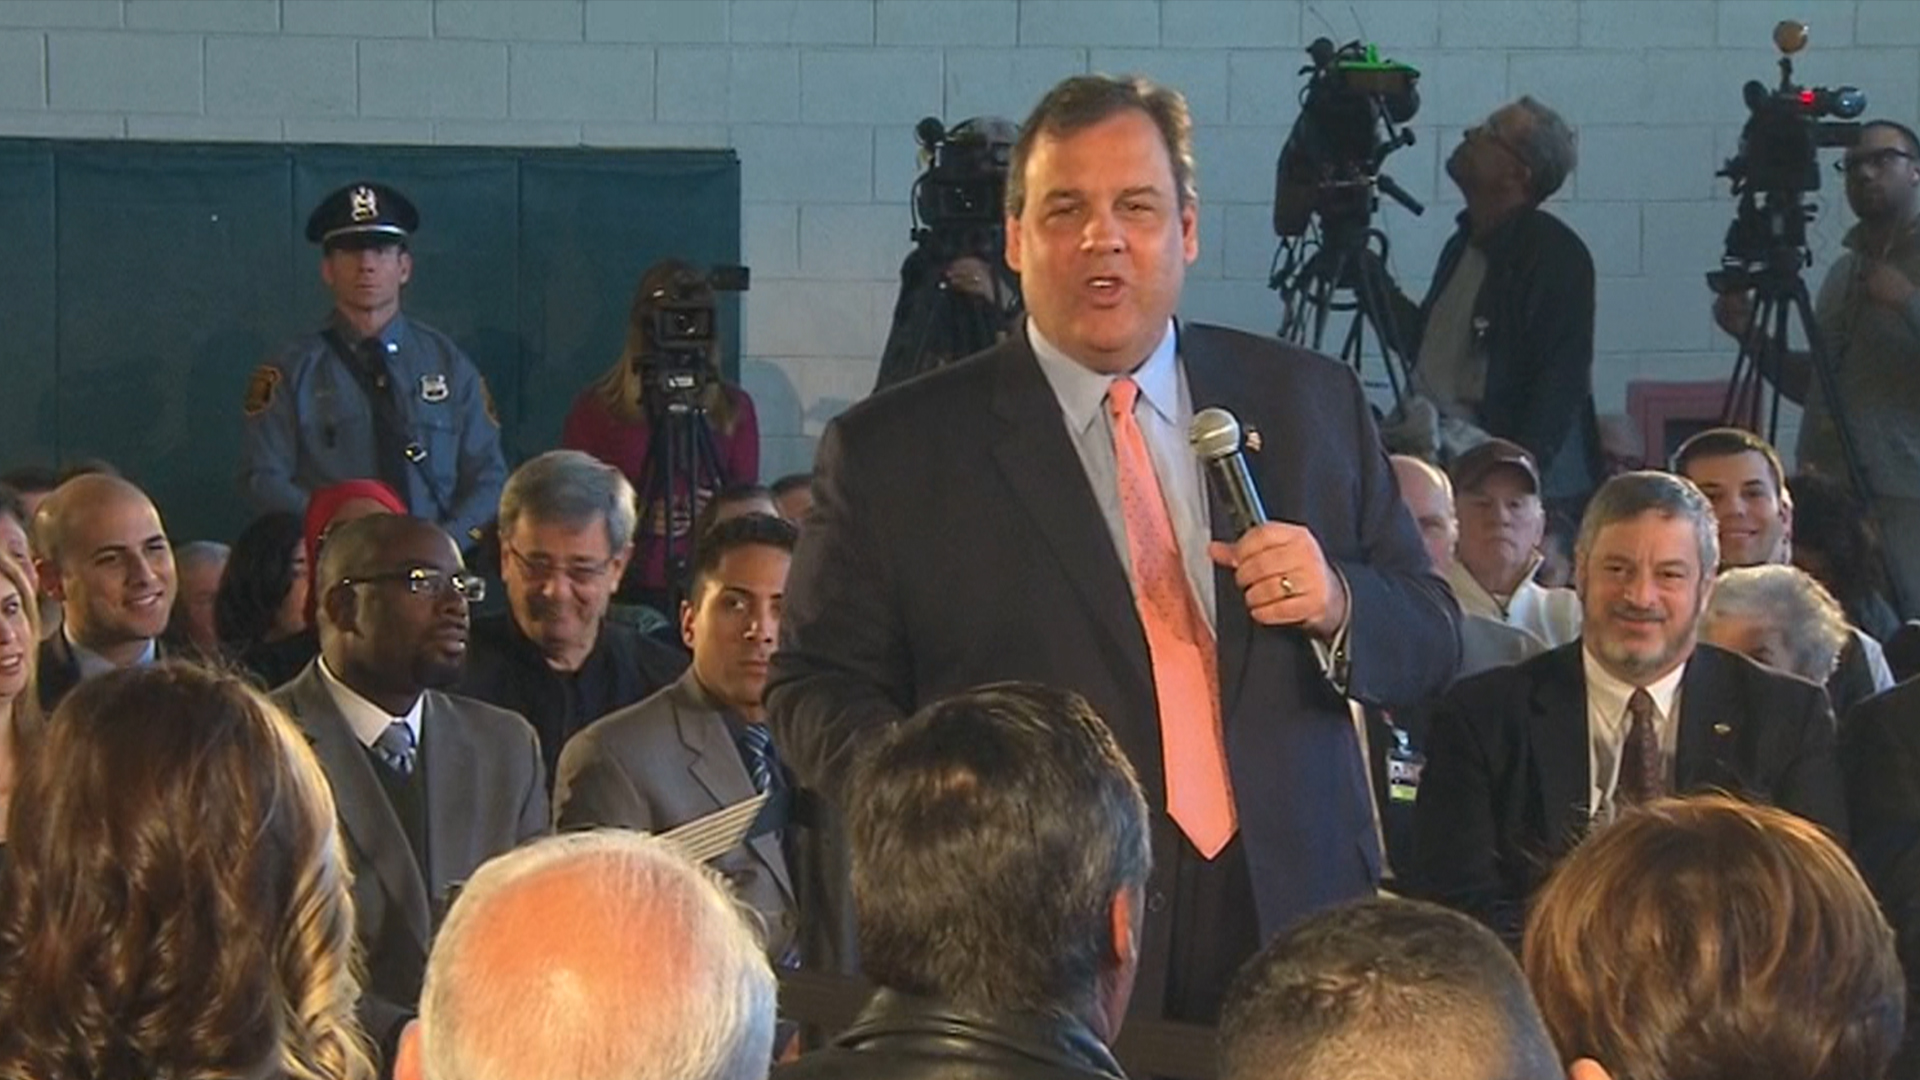 Protesters speak out at Christie town hall